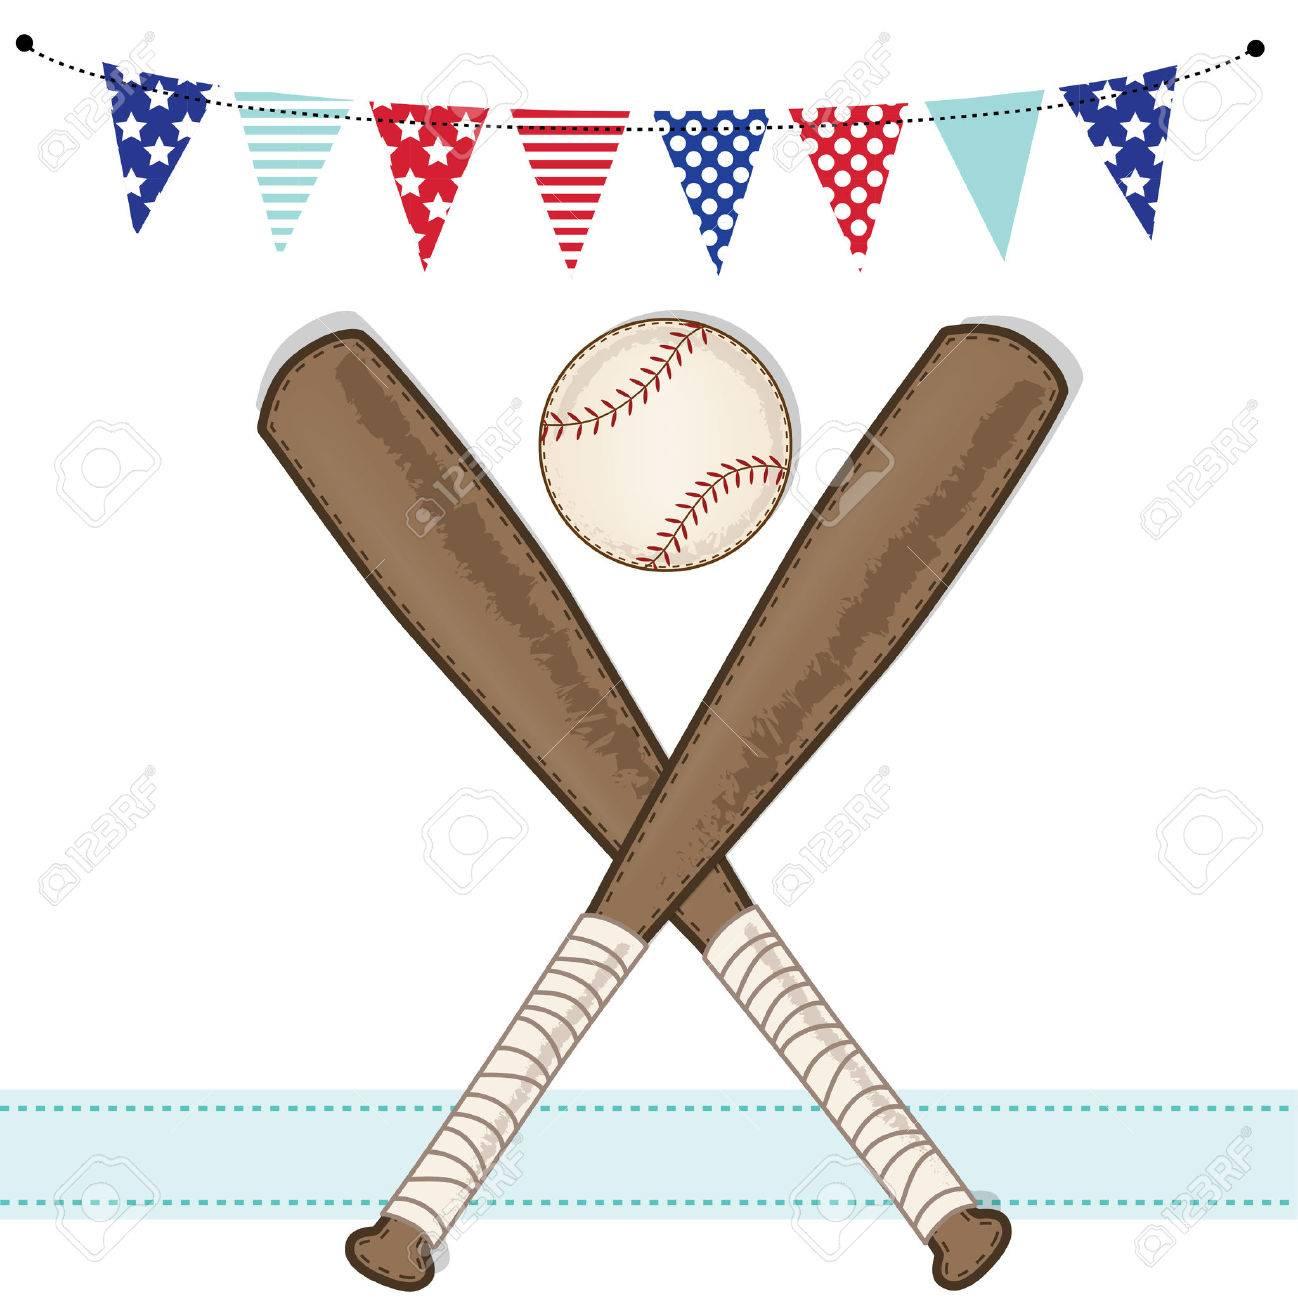 baseball and bat with american patriotic banners and frame layout for scrapbooking or cards